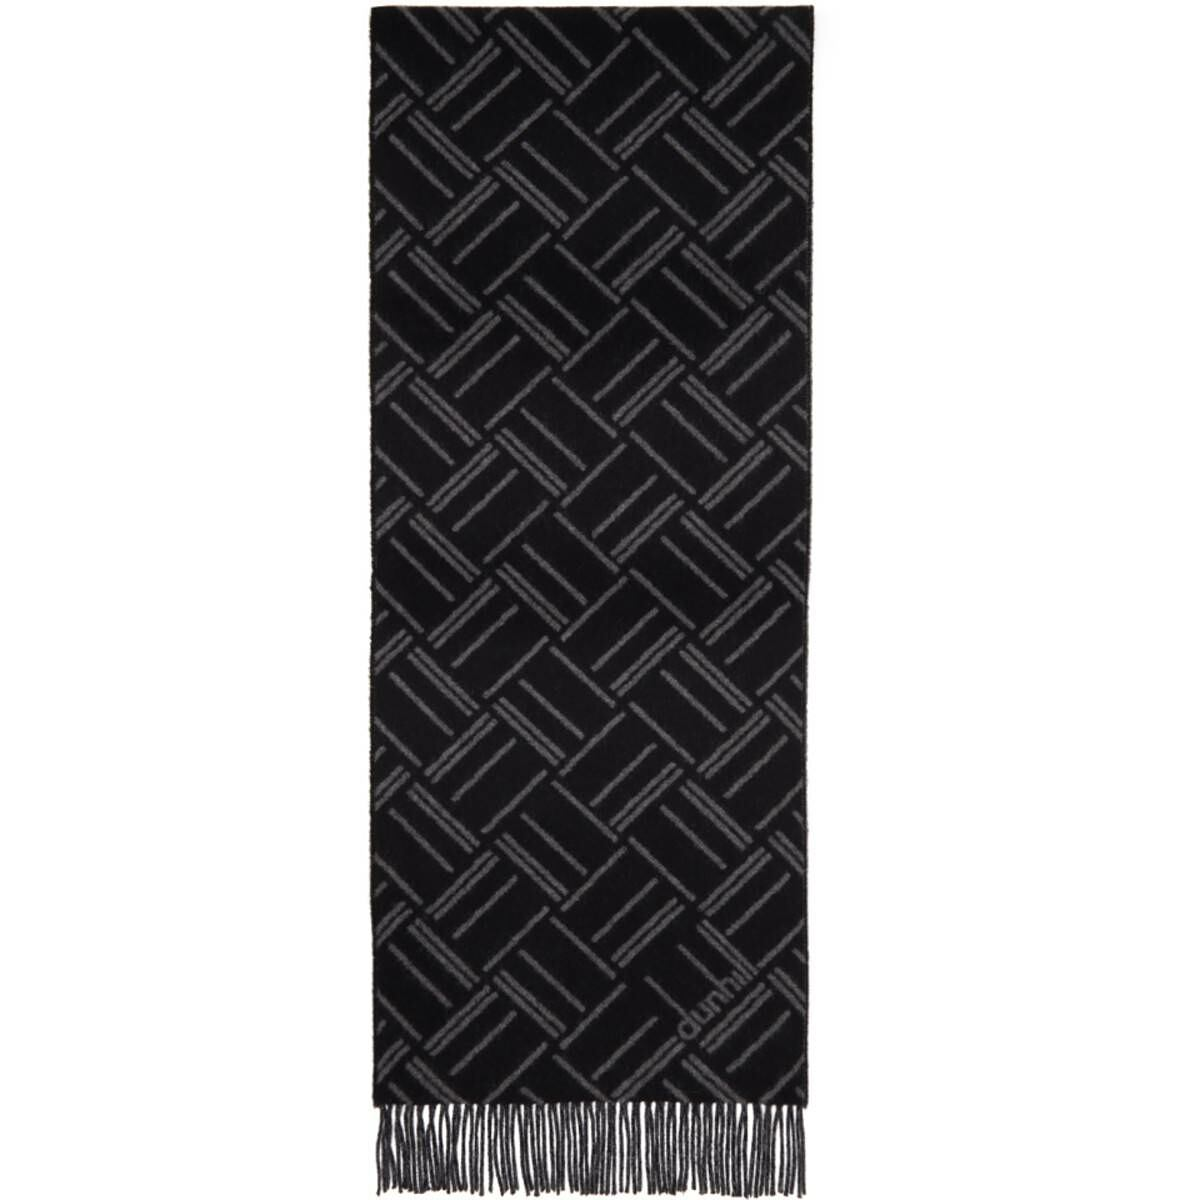 Dunhill Black and Grey Abstract Longtail Jacquard Scarf Ssense USA MEN Men ACCESSORIES Mens SCARFS